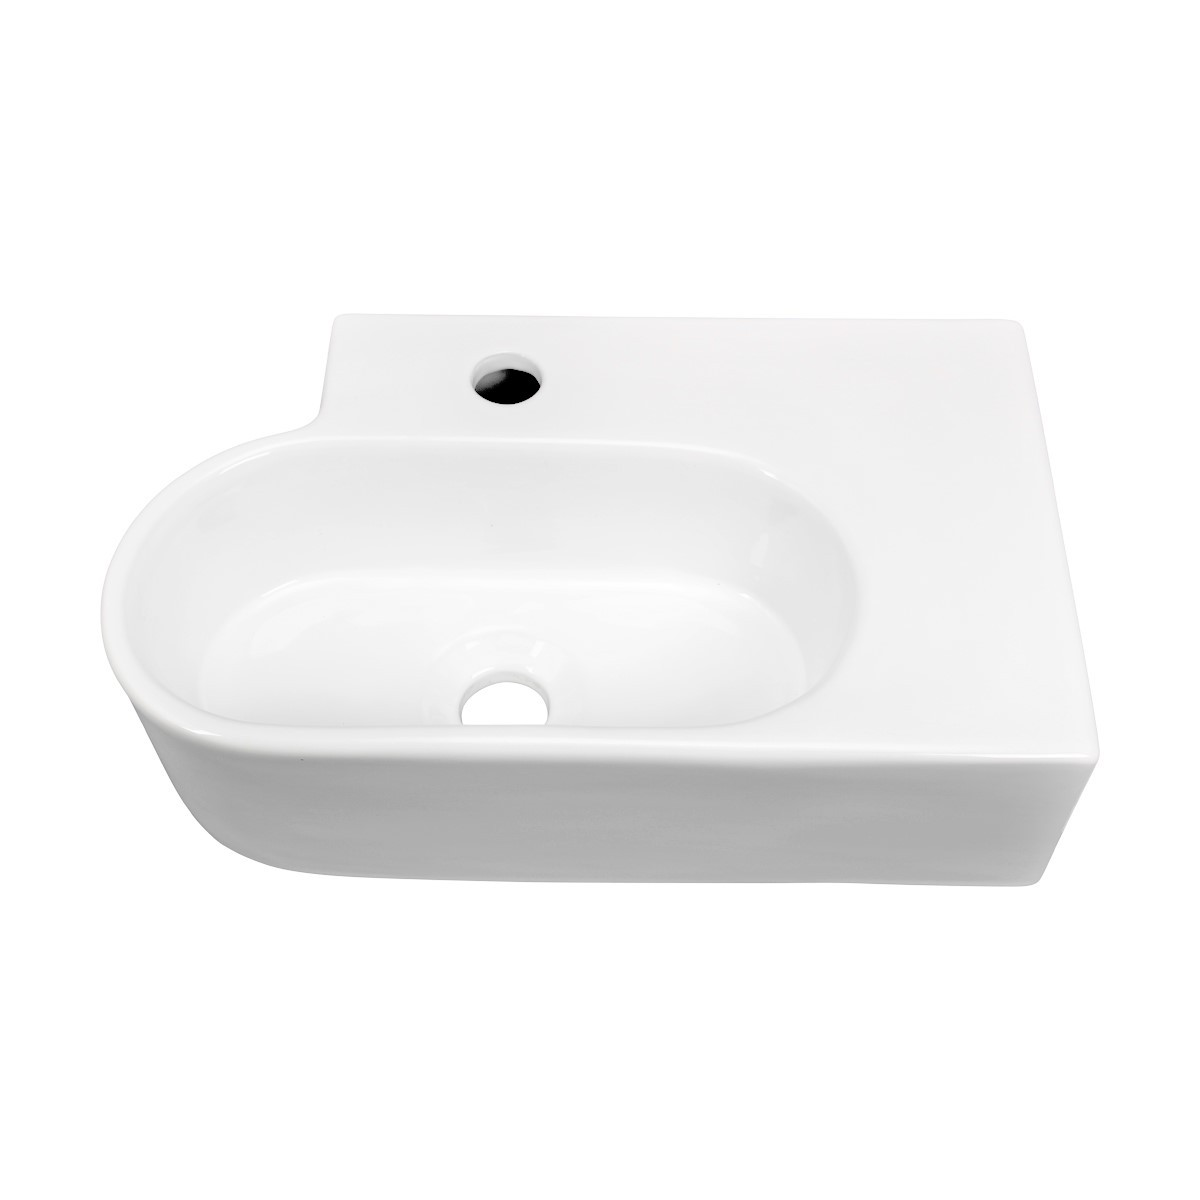 Renovators Supply White Bathroom Corner Wall Mount Above Counter Vessel Sink bathroom vessel sinks Countertop vessel sink Unique Bathroom Vessel Sink